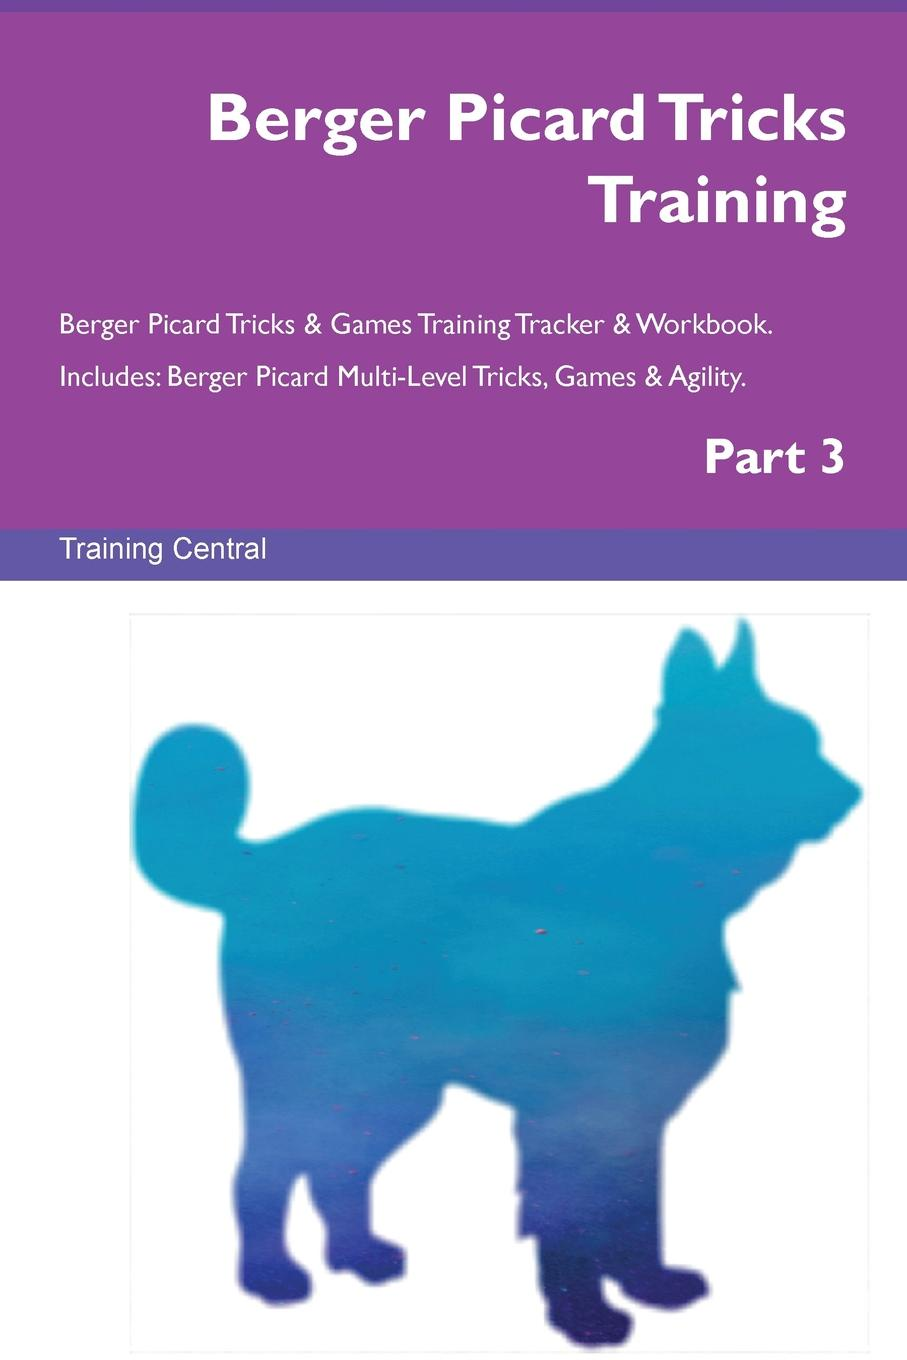 Training Central Berger Picard Tricks Training Berger Picard Tricks & Games Training Tracker & Workbook. Includes. Berger Picard Multi-Level Tricks, Games & Agility. Part 3 picard сумка picard 8604 37y 001 schwarz